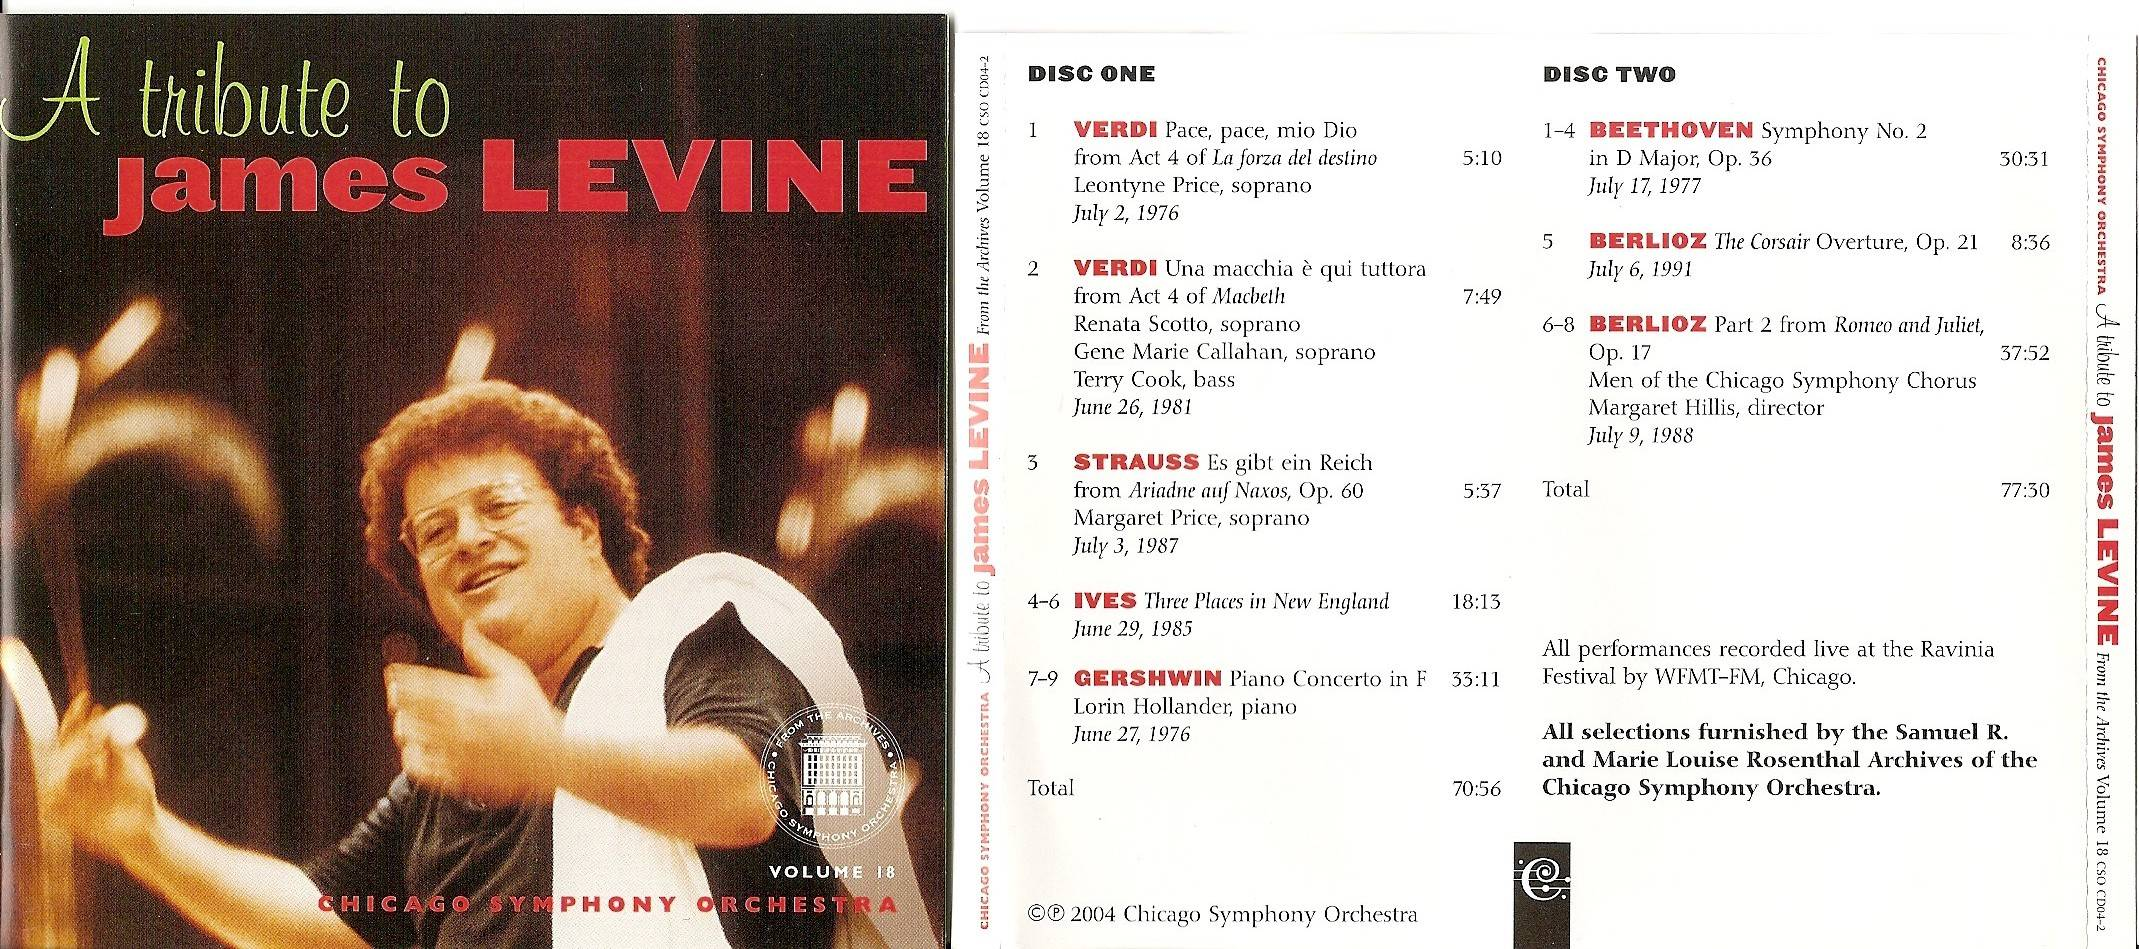 Chicago Symphony Orchestra - From the Archives, Vol.18: A Tribute to James Levine, 2-CD set (2004)